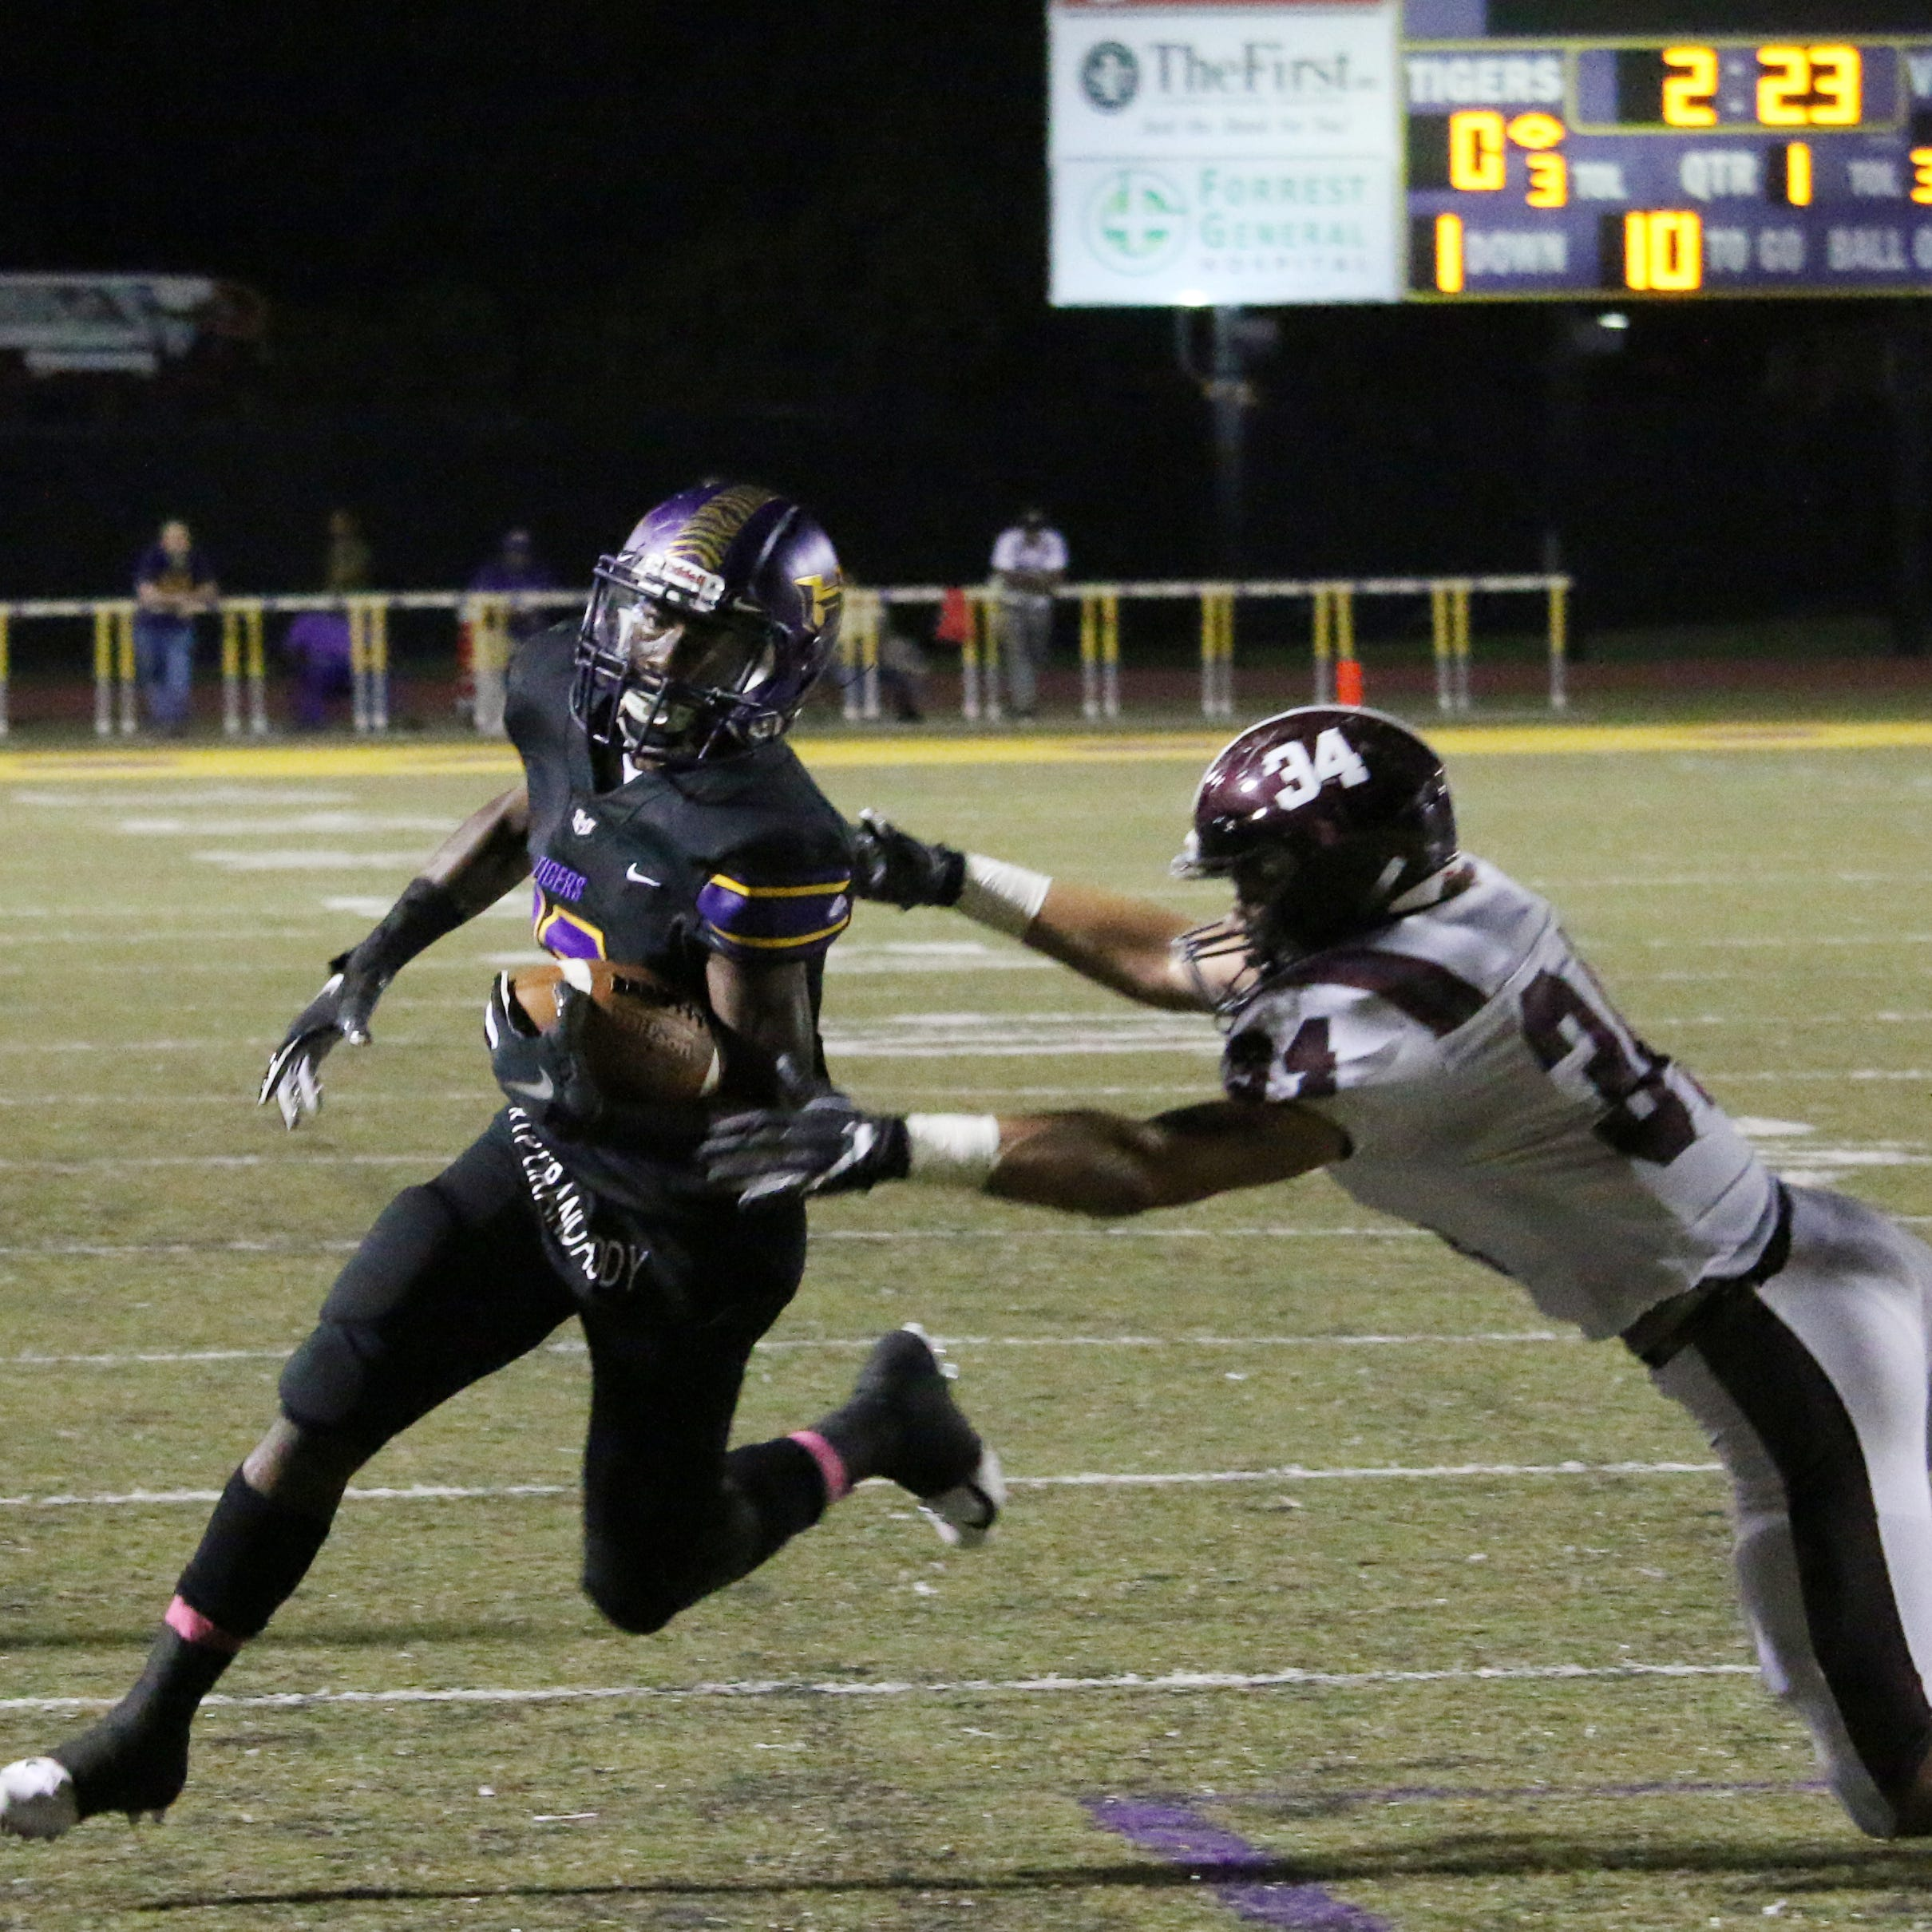 Hattiesburg escapes with 49-35 win over Picayune, remains unbeaten